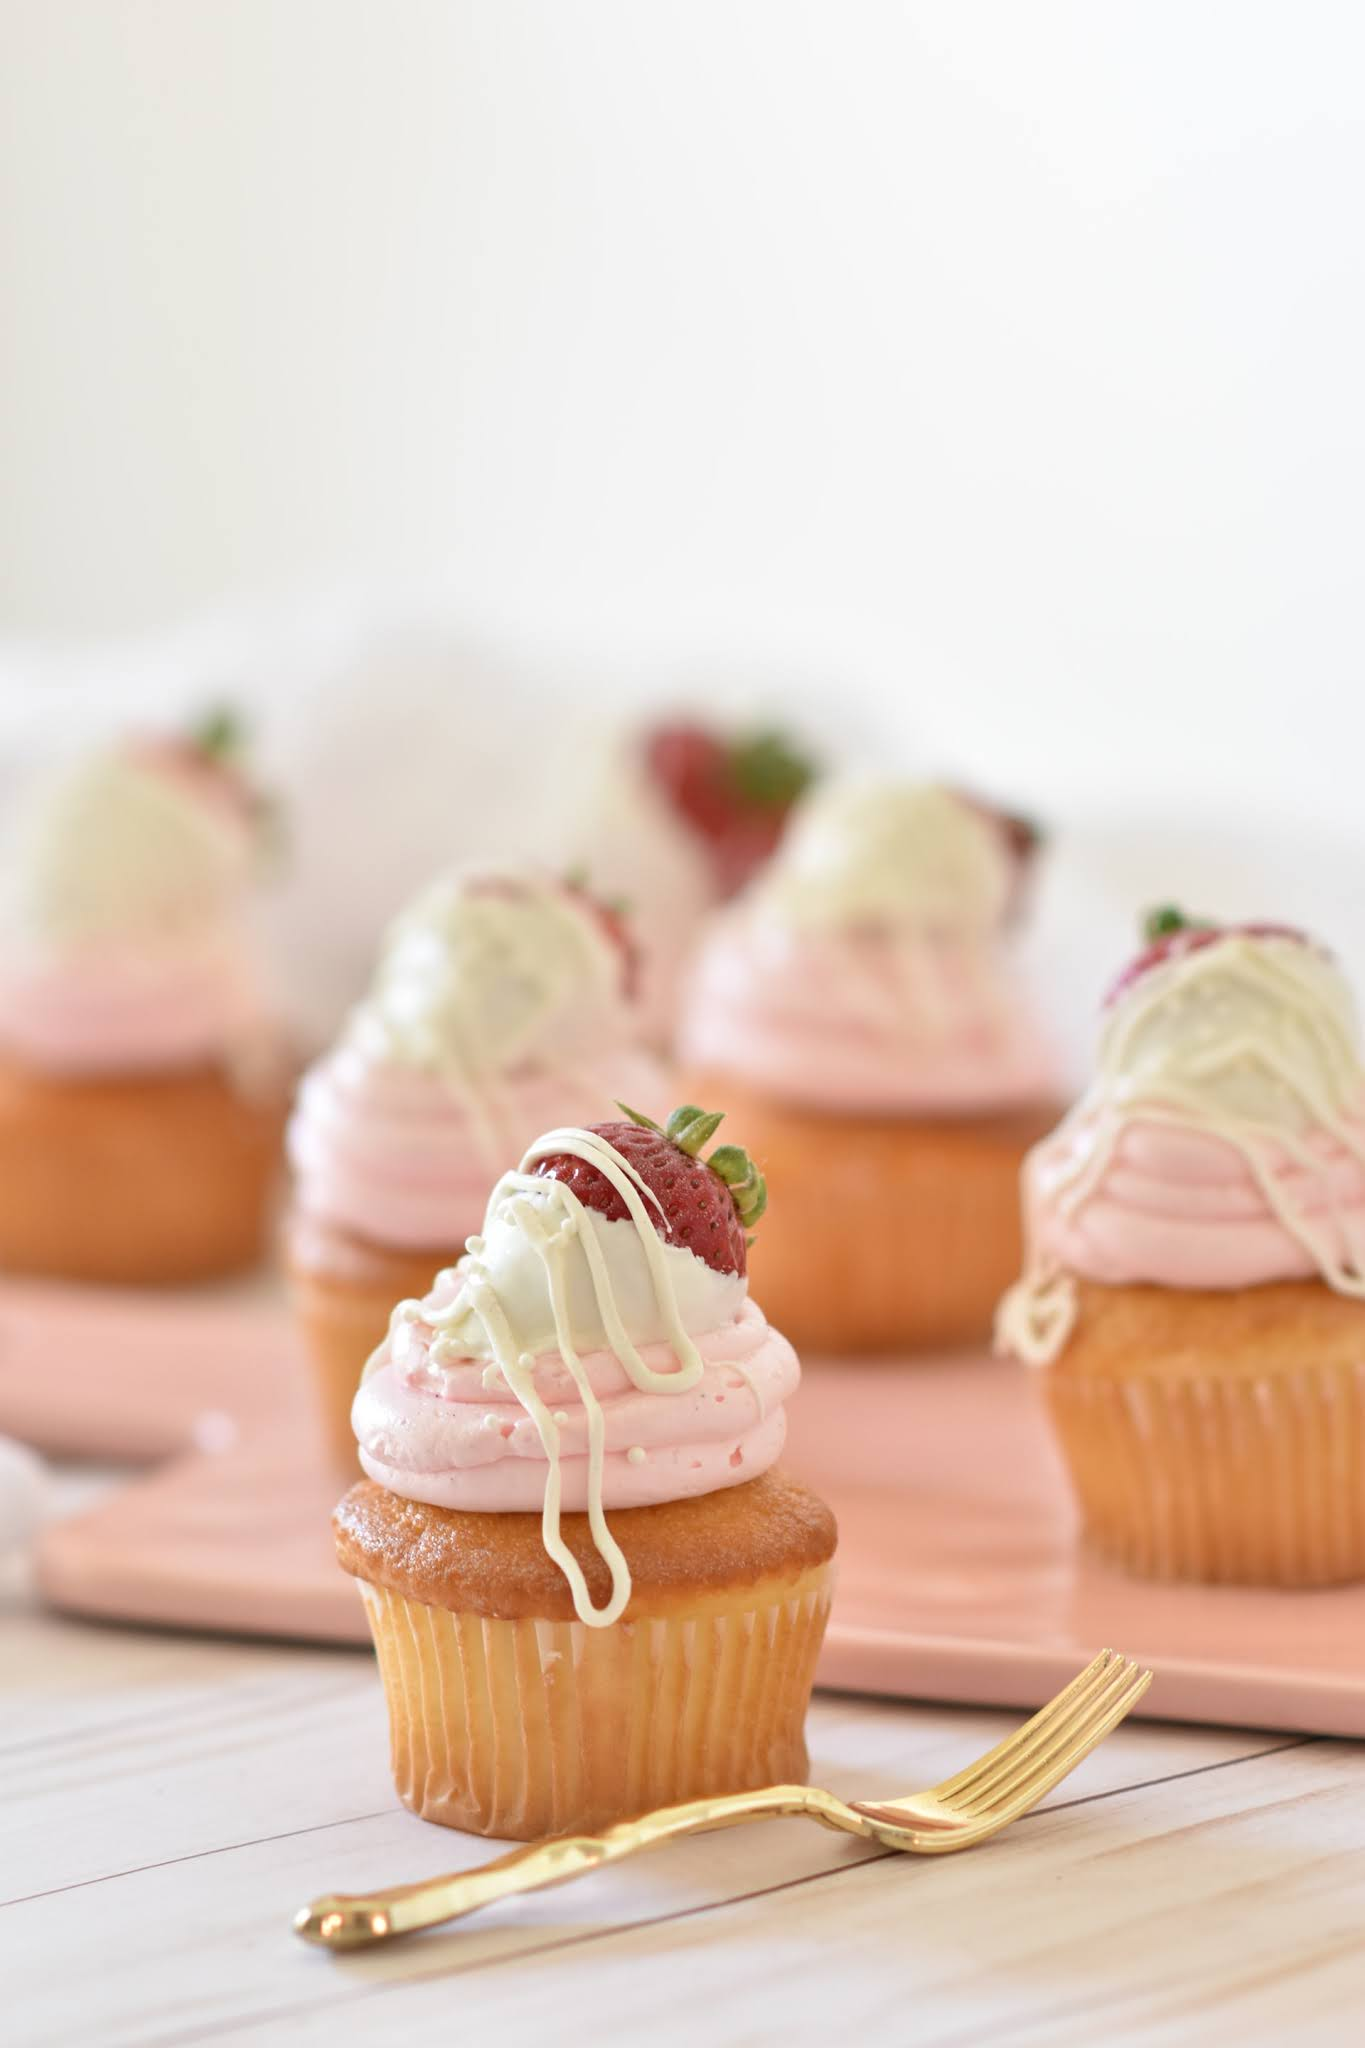 Strawberry Shortcake Cupcakes with Strawberry Buttercream Frosting